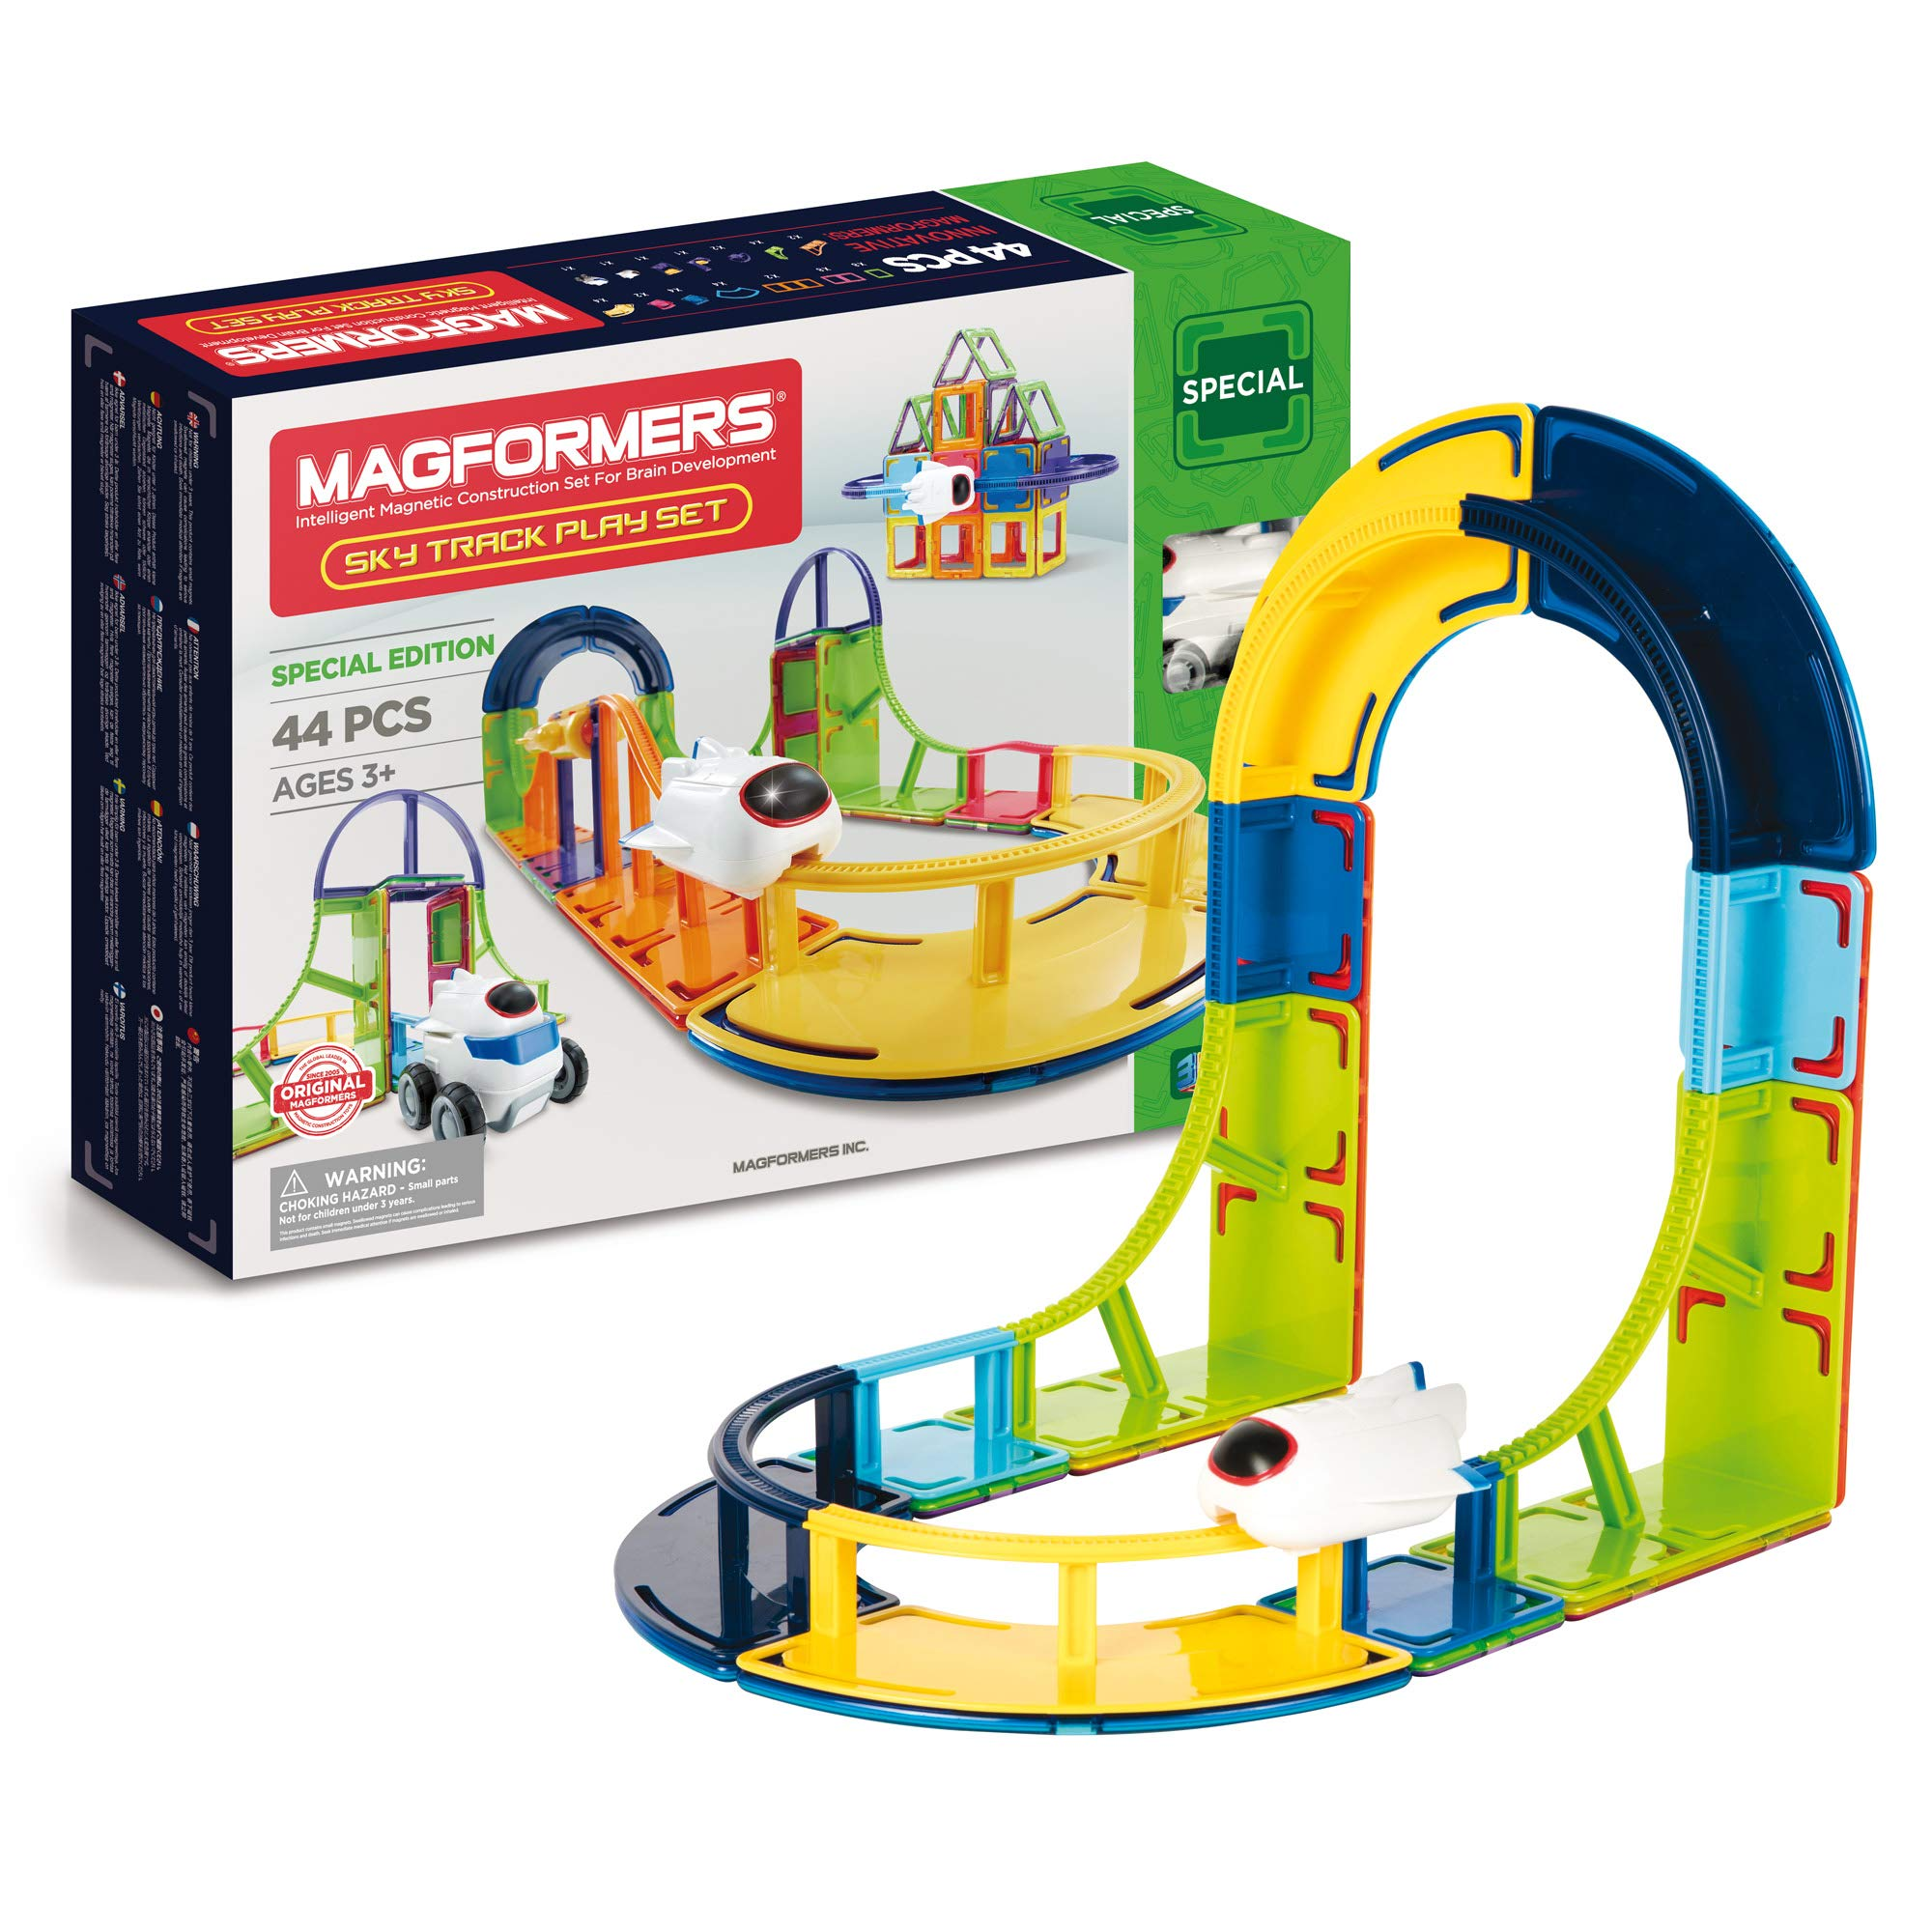 Magformers SkyTrack Play (44-Piece) Set